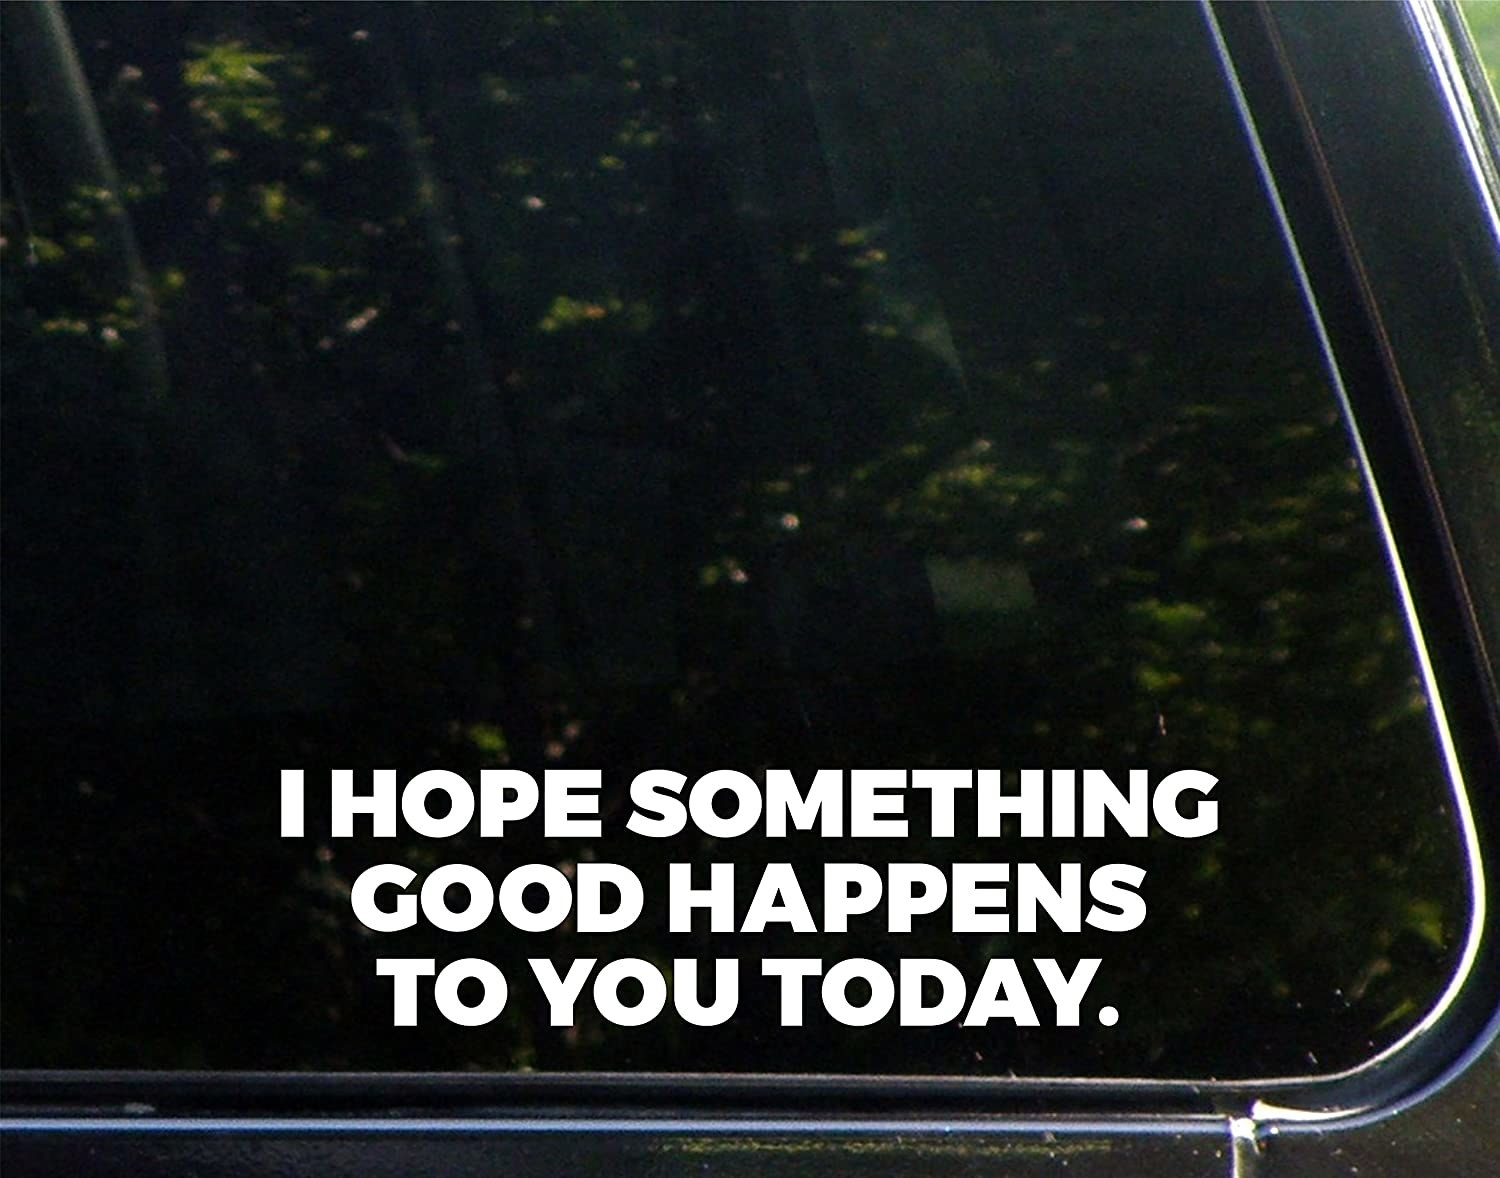 sticker says i hope something good happens to you today in capital letters